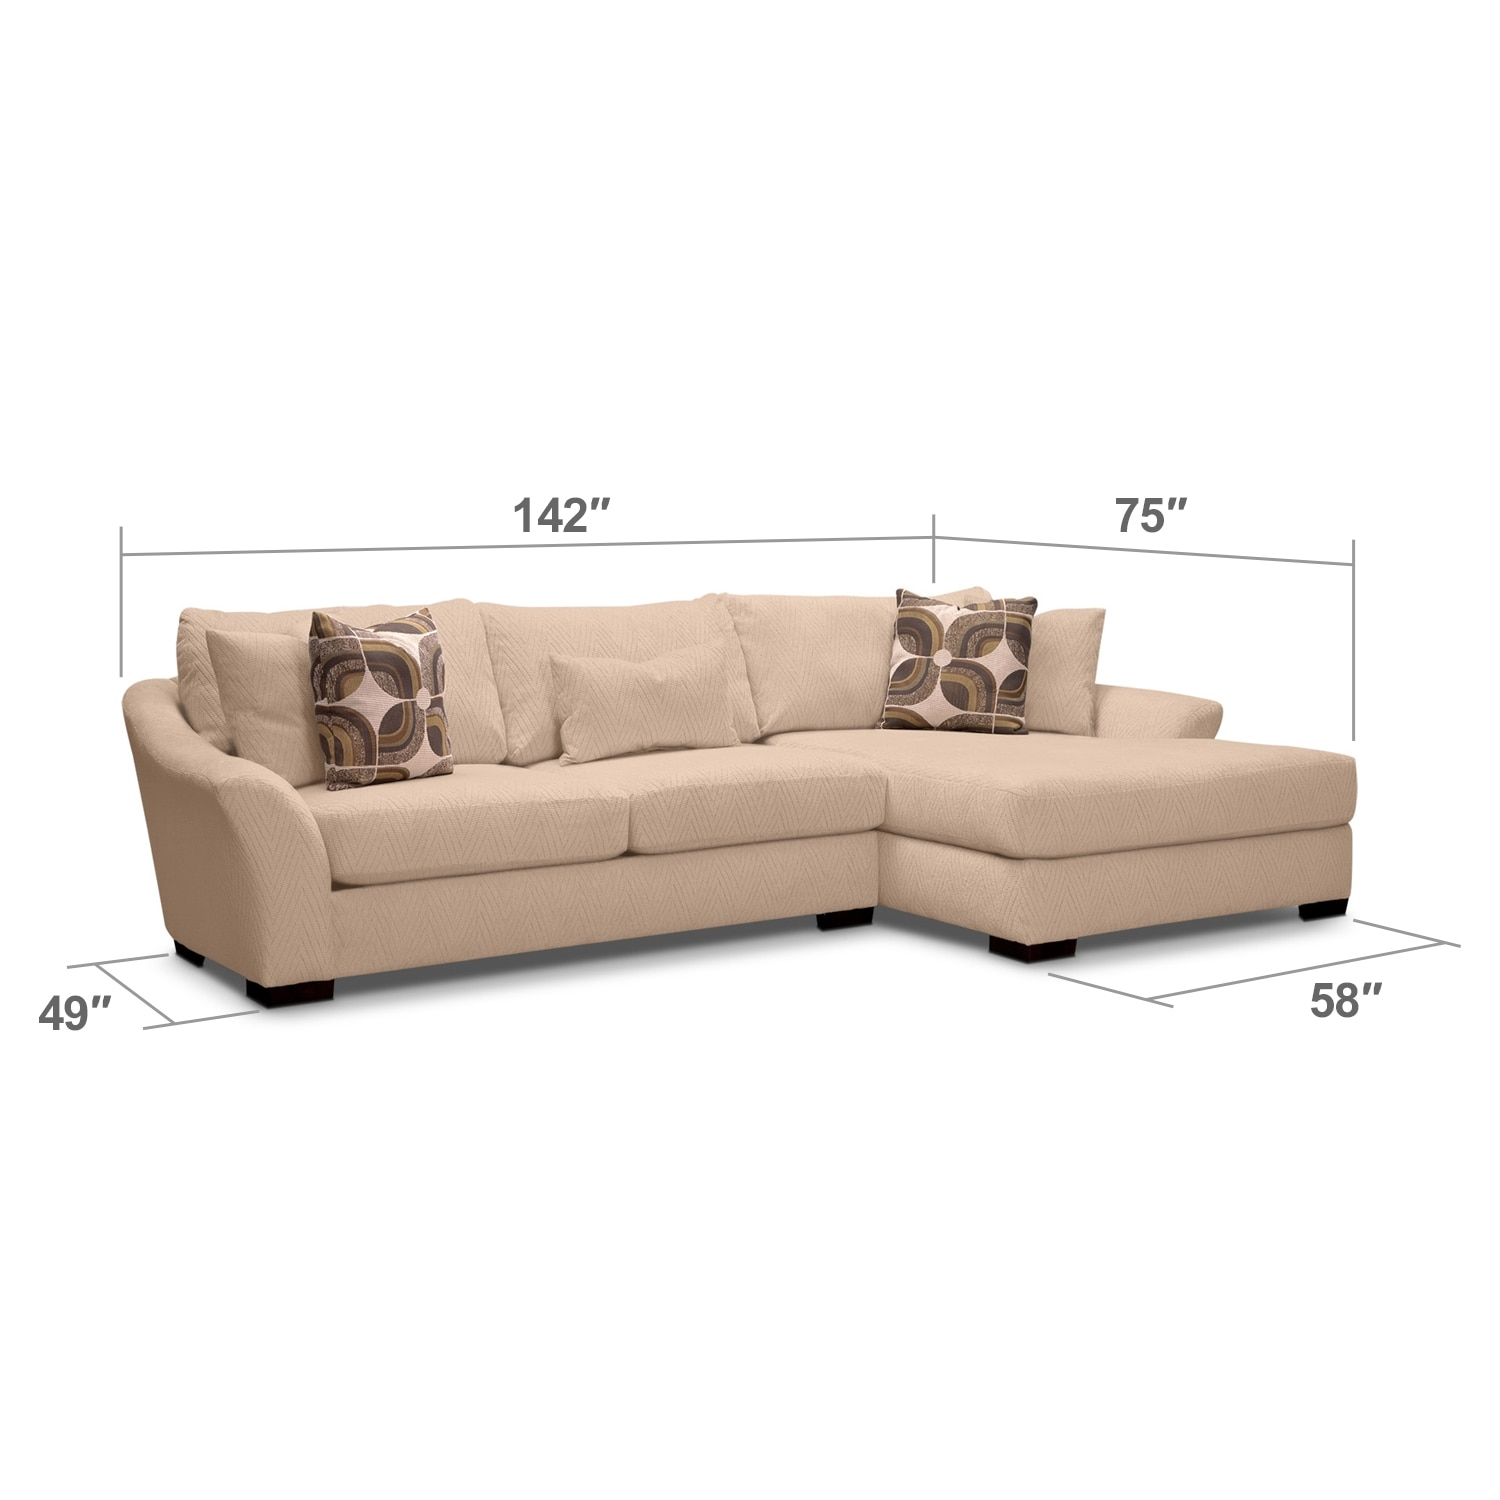 Living Room Furniture - Orleans Cream 2 Pc. Sectional (Reverse)